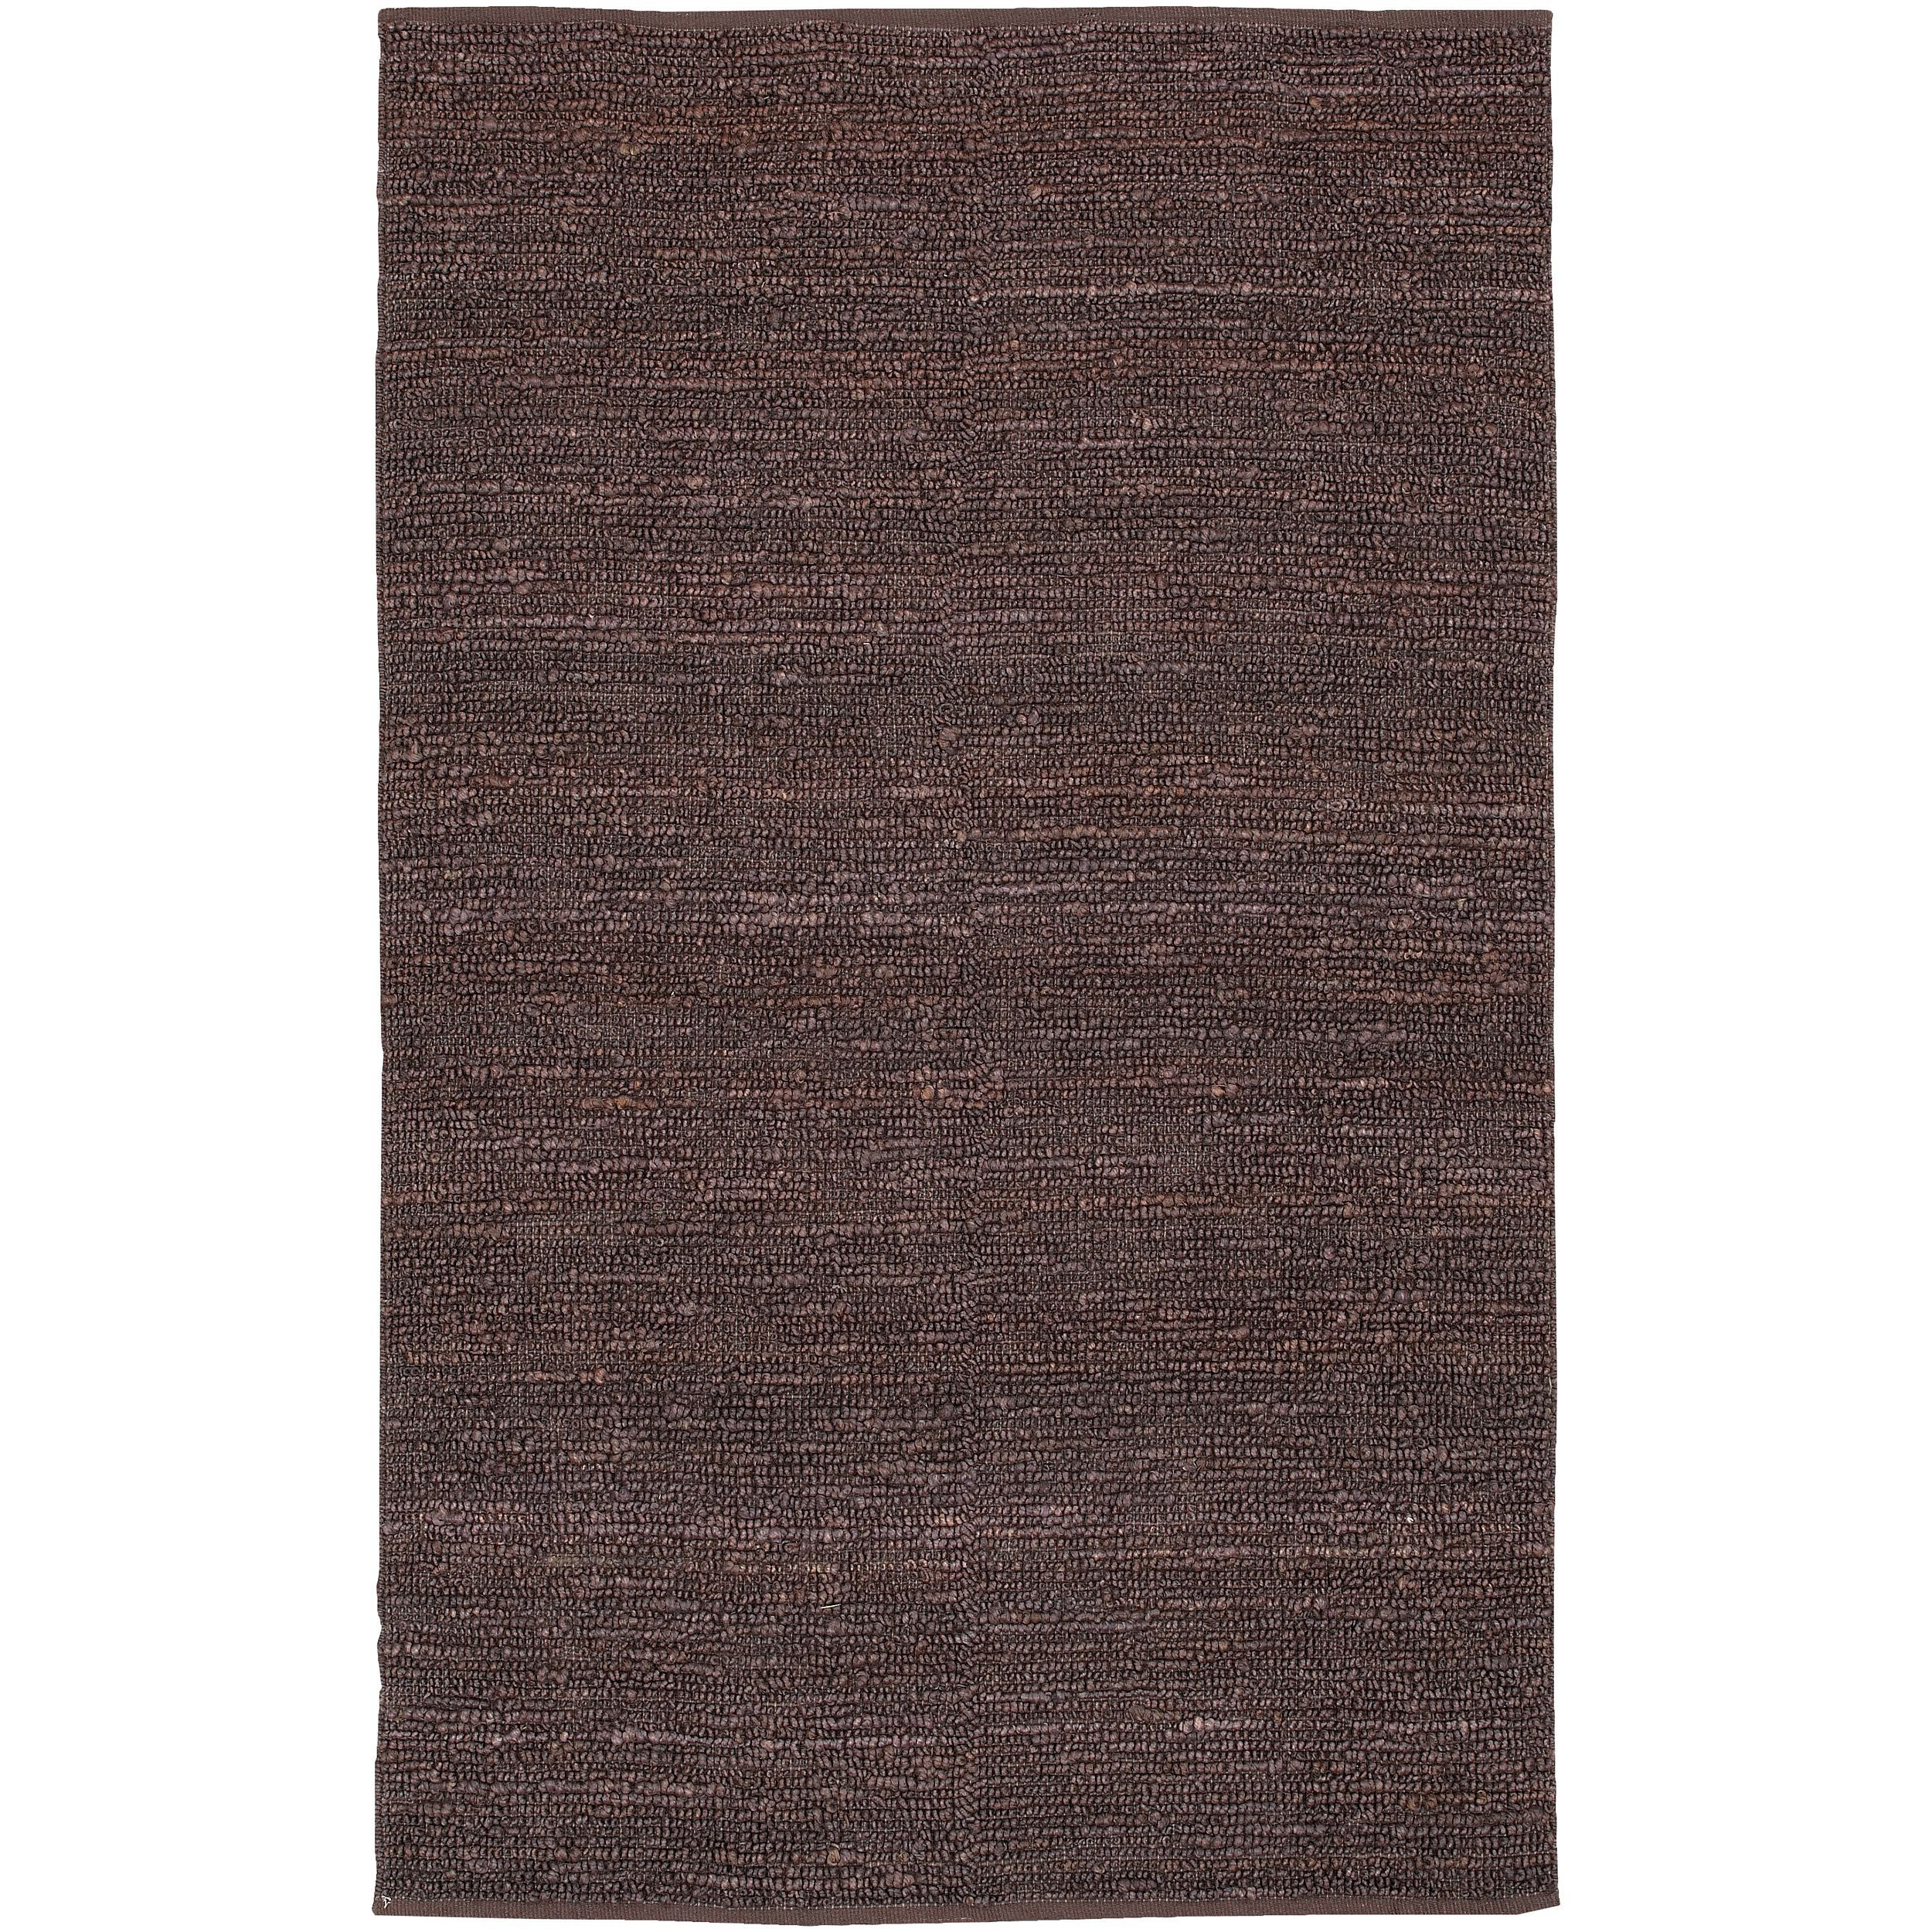 This natural fiber rug is handwoven in India from 100-percent jute. The fibers are woven in loops and will bring a casual look to any home decor.